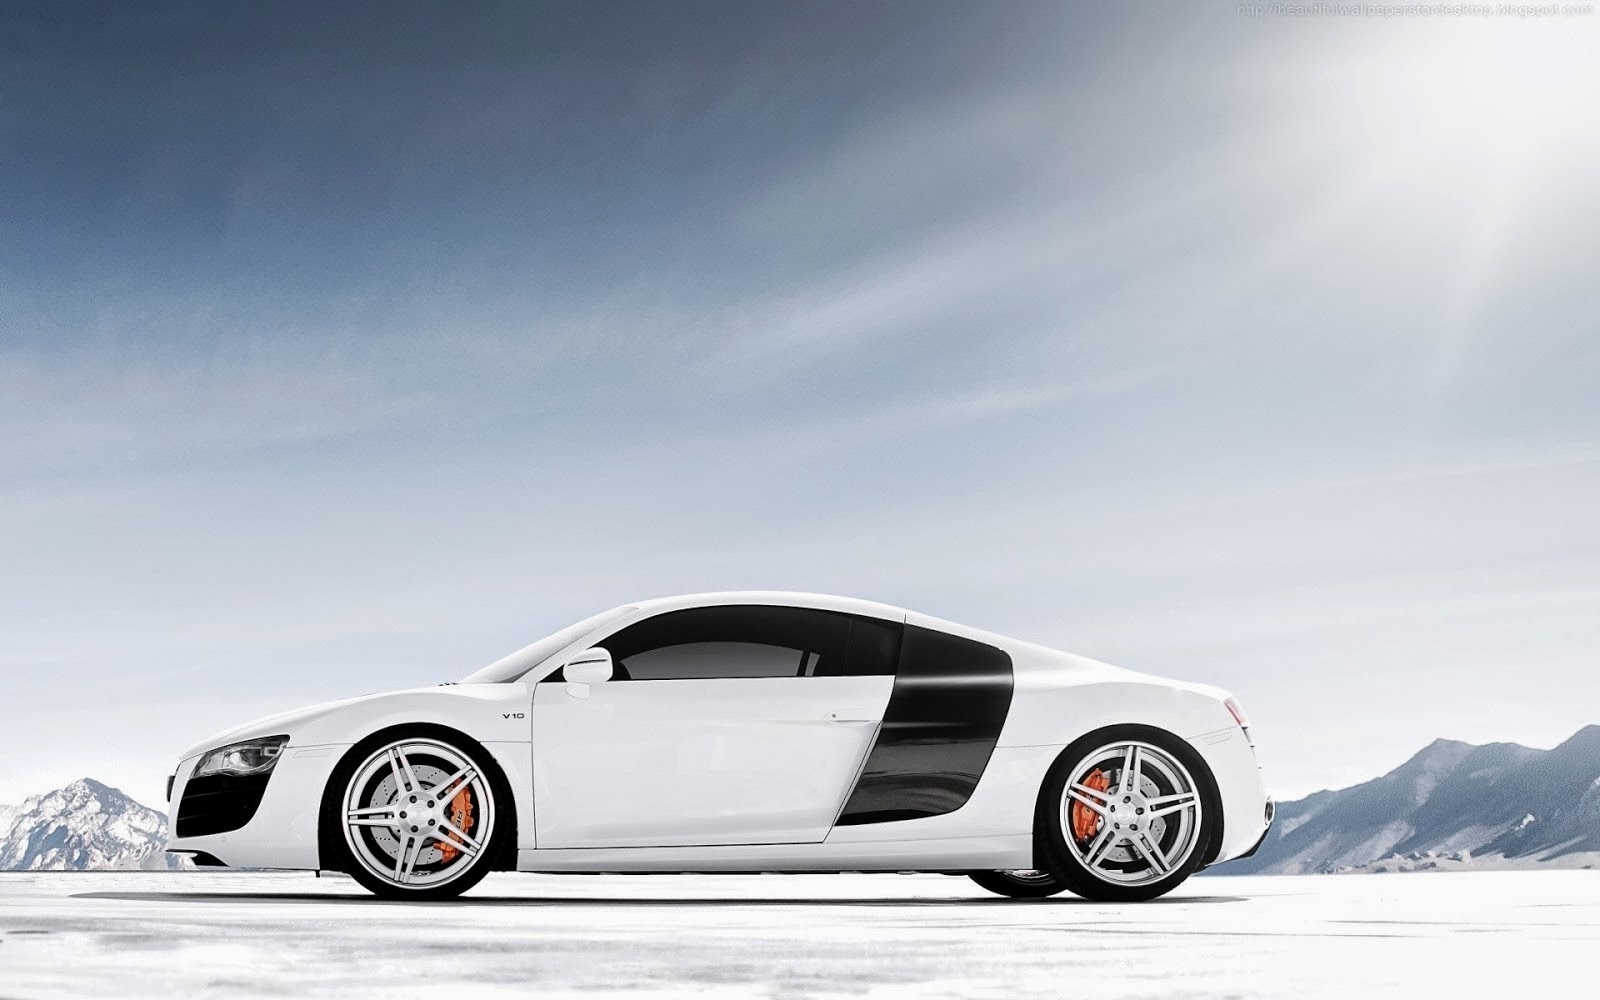 Beautiful White Cars Wallpapers Desktop New Auto Wallpapers